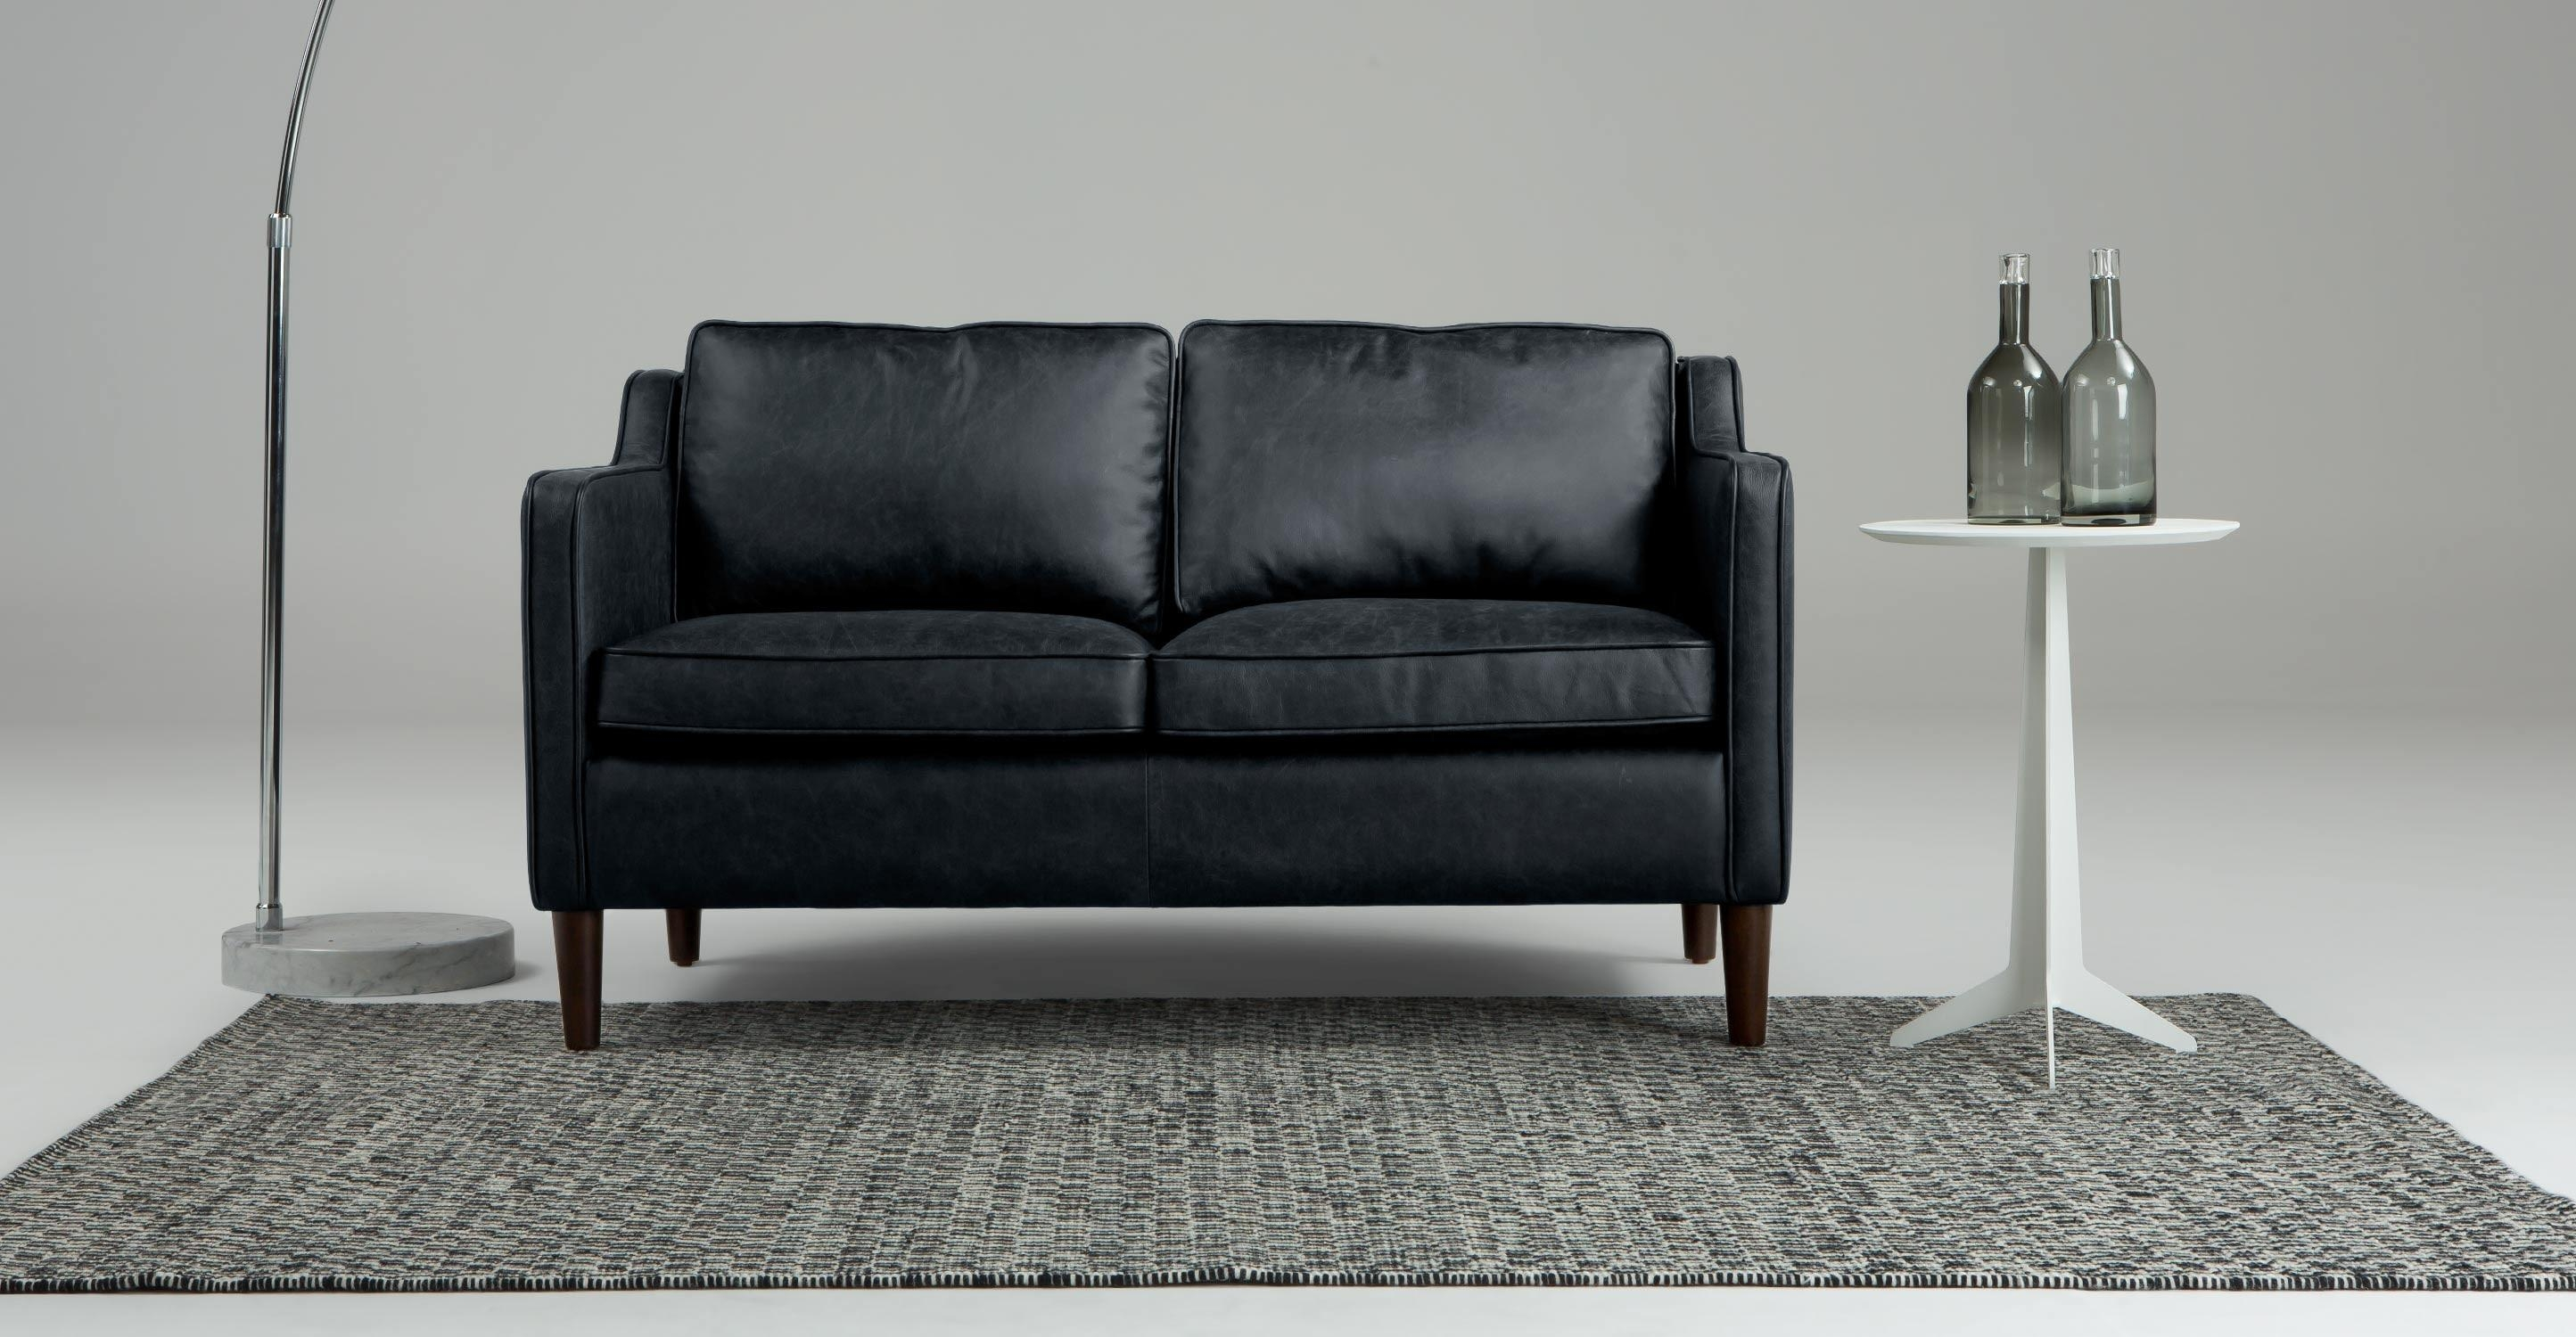 Walken 2 Seater Sofa In Black Premium Leather | Made For Black 2 Seater Sofas (View 9 of 20)